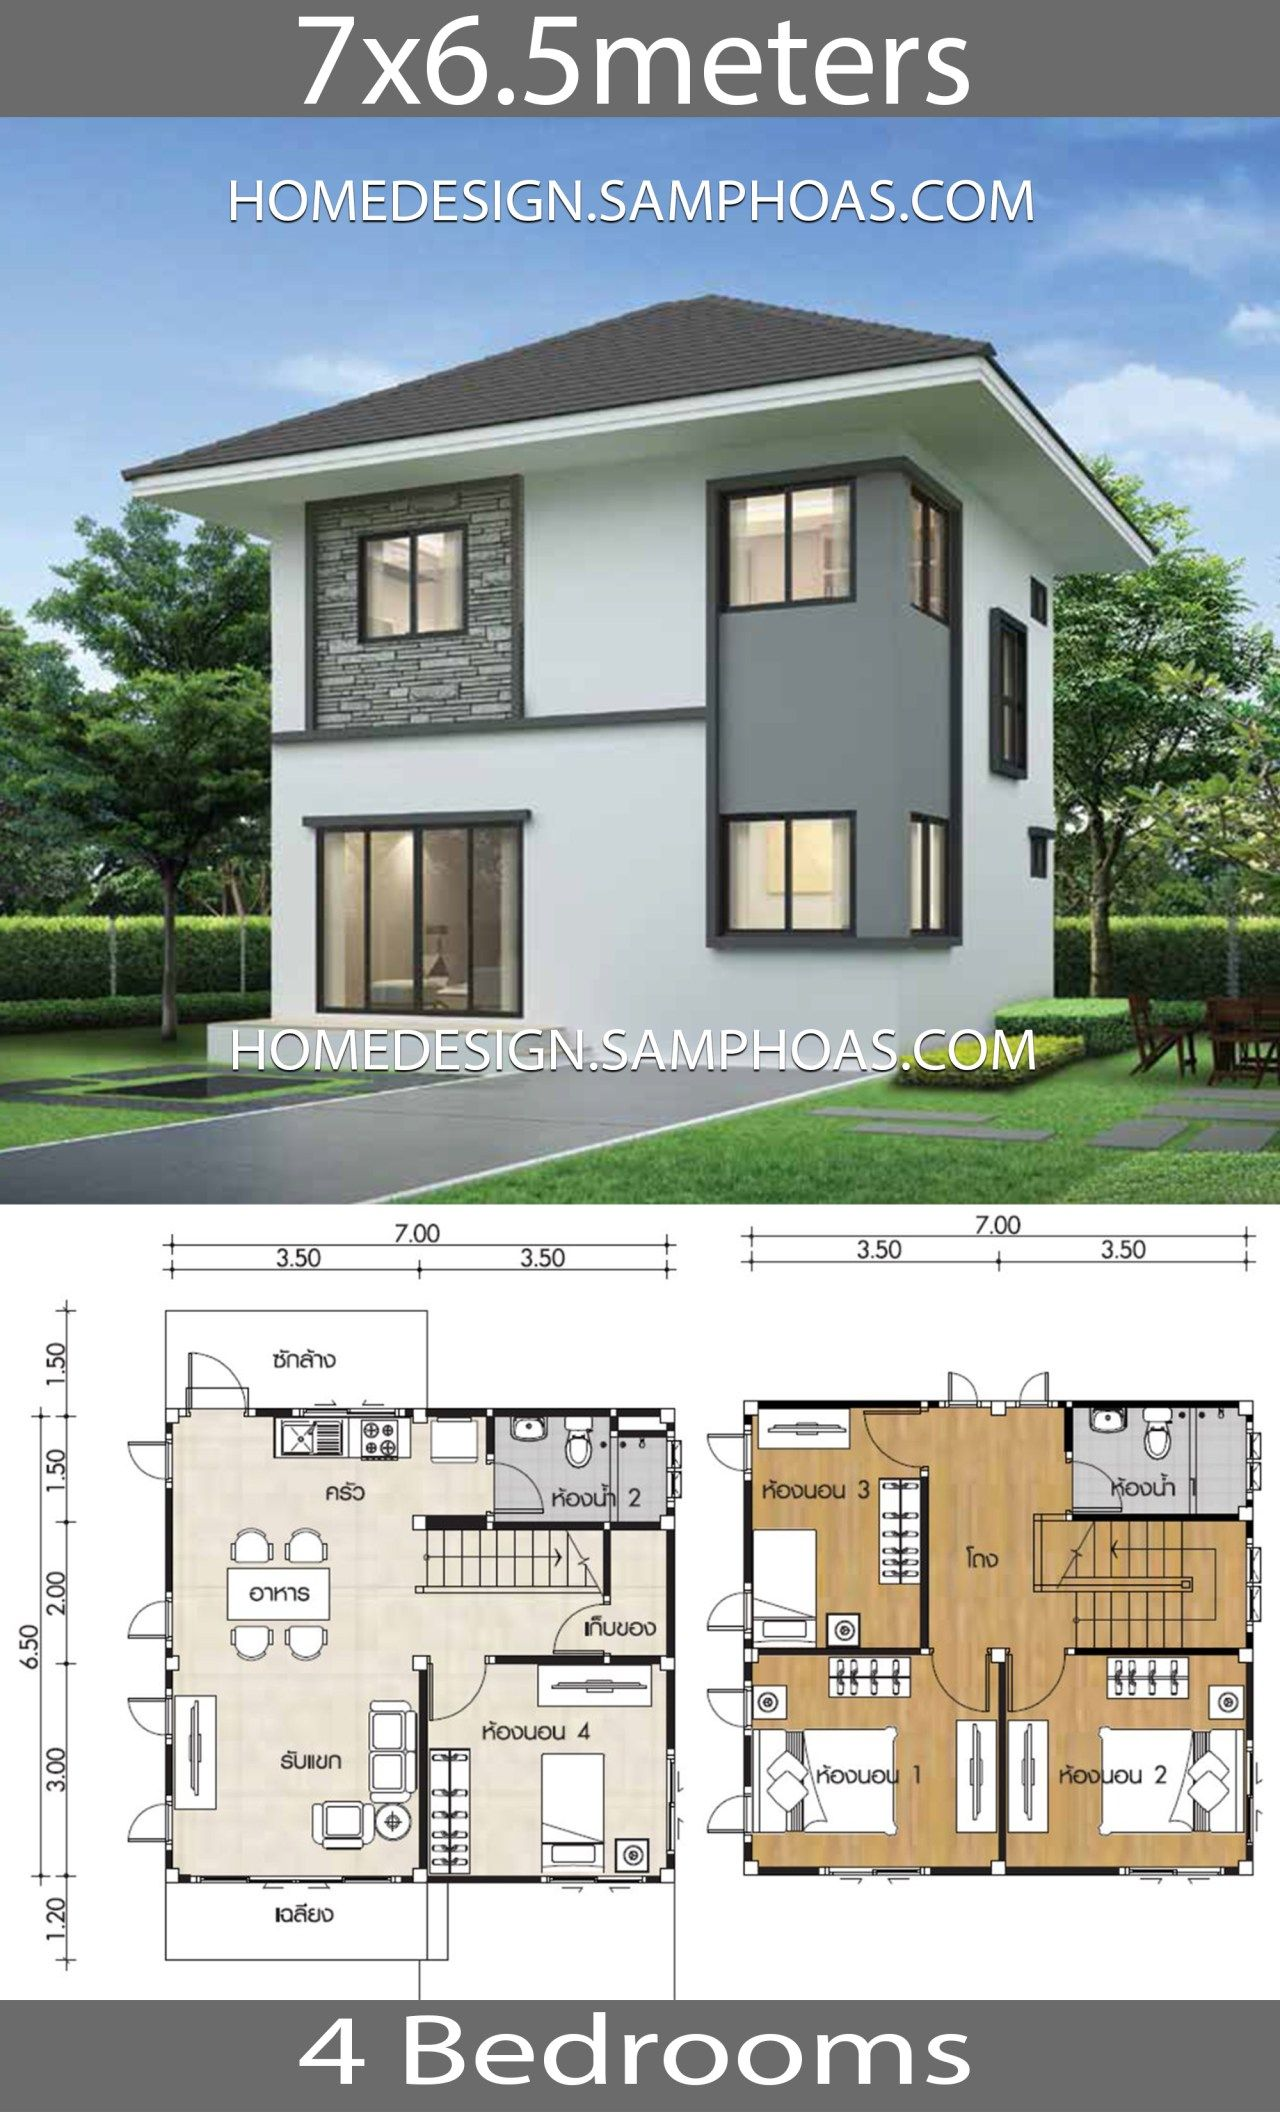 Small Home Plans 7x6 5m With 4 Bedrooms Small House Design Plans Simple House Plans House Plans